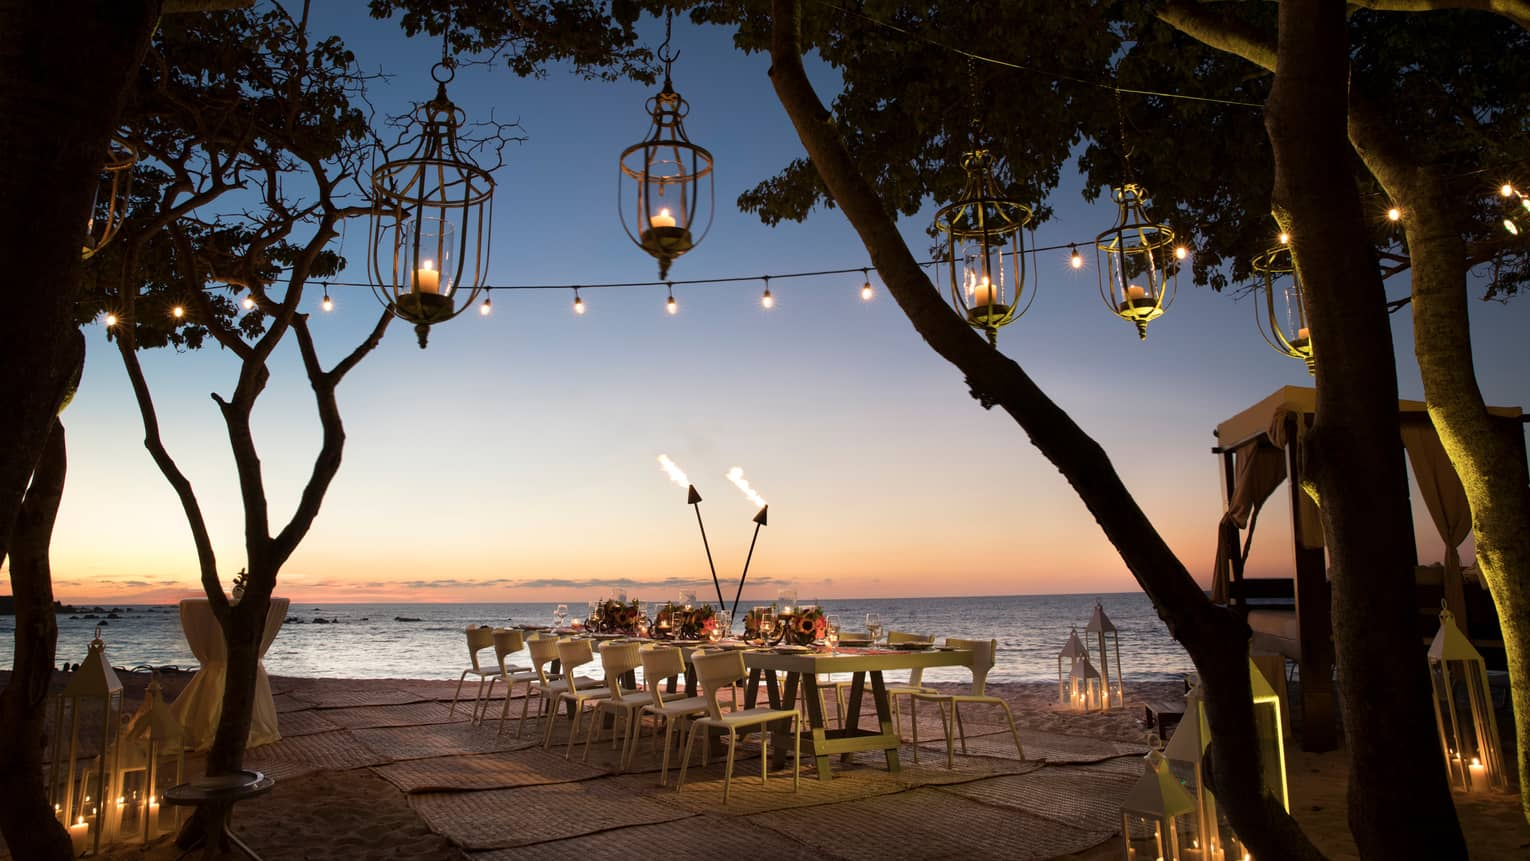 Lanterns hang from trees near private dining table with torches on beach at sunset